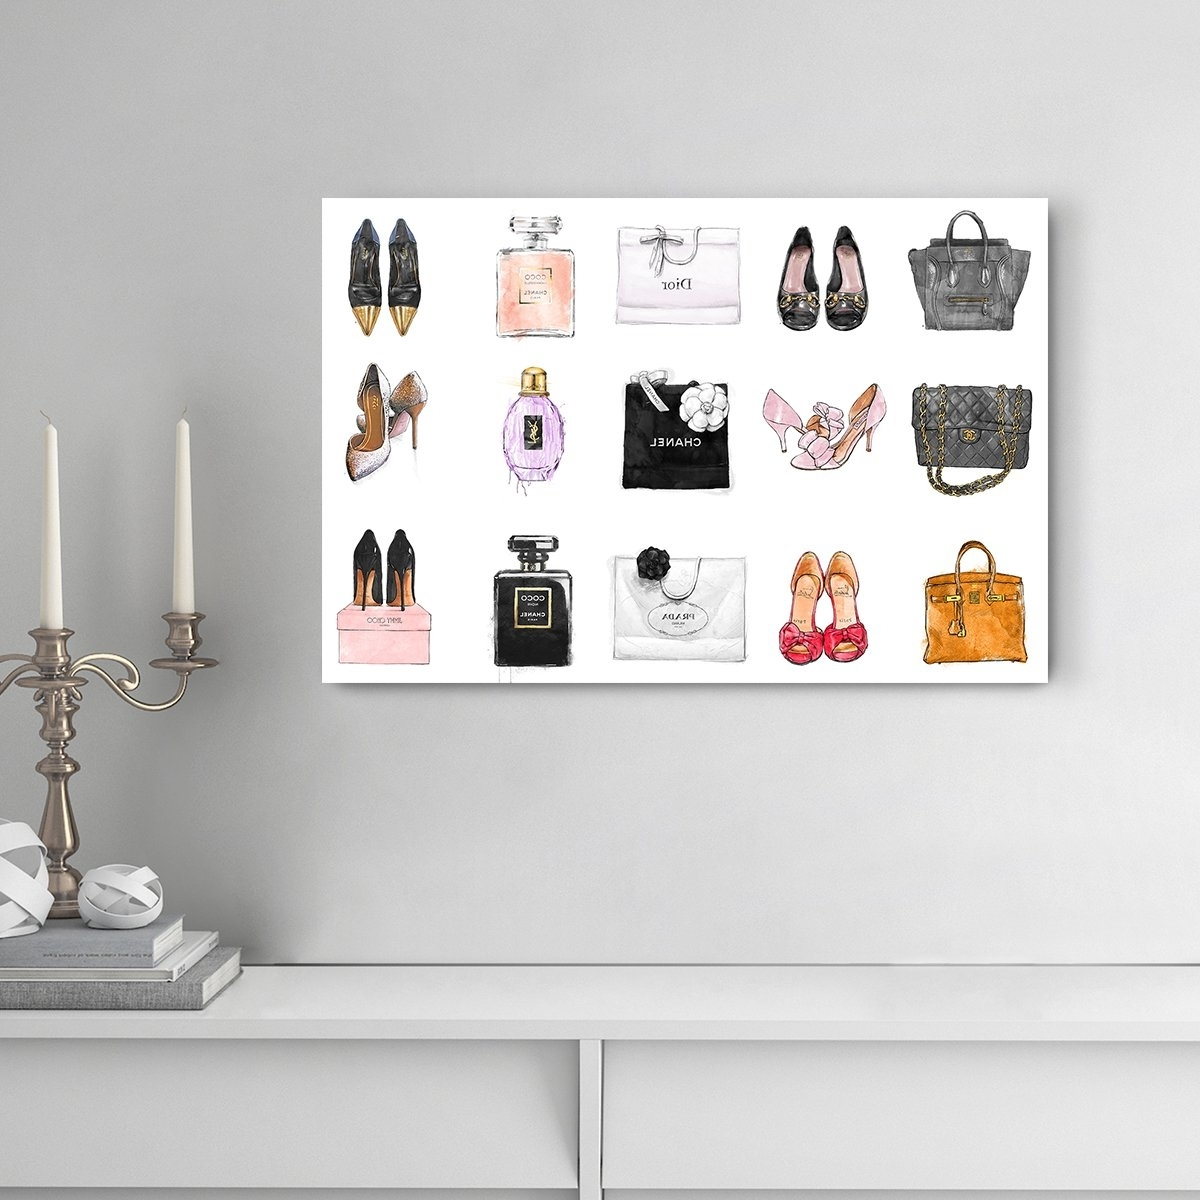 Fashion Wall Art Pertaining To Current Fashion Chart' Contemporary Canvas Wall Art Print For Home Decor And (Gallery 19 of 20)